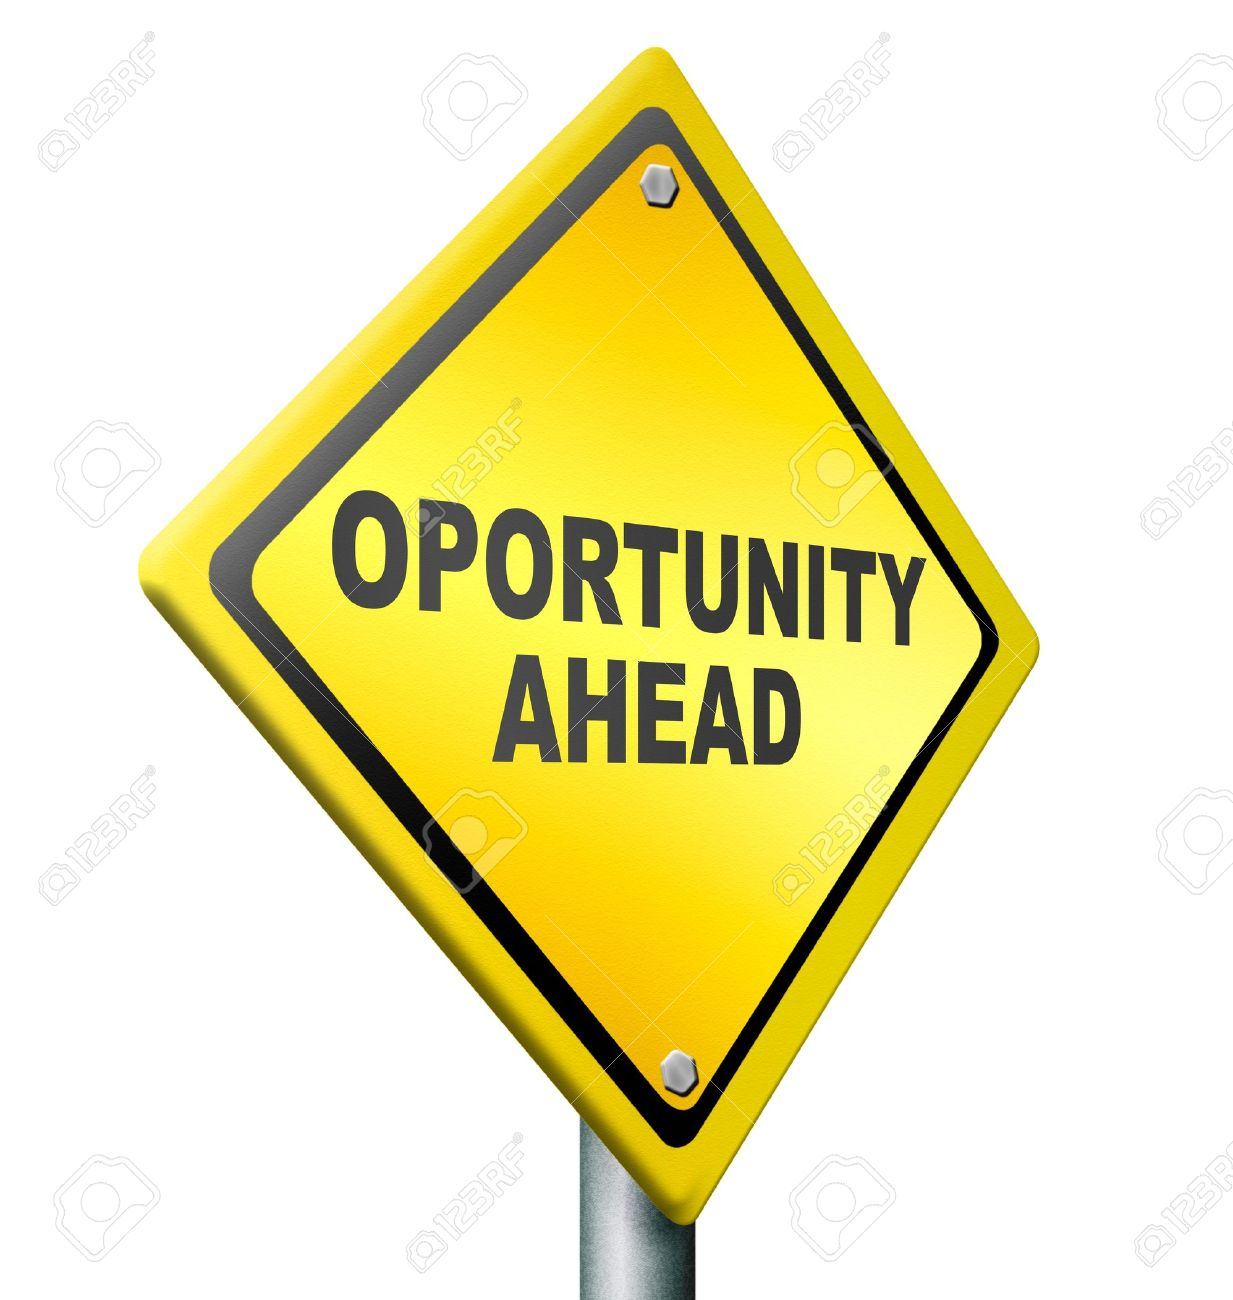 opportunity ahead best chances to change for the better job stock photo opportunity ahead best chances to change for the better job improvement career move yellow road sign black text